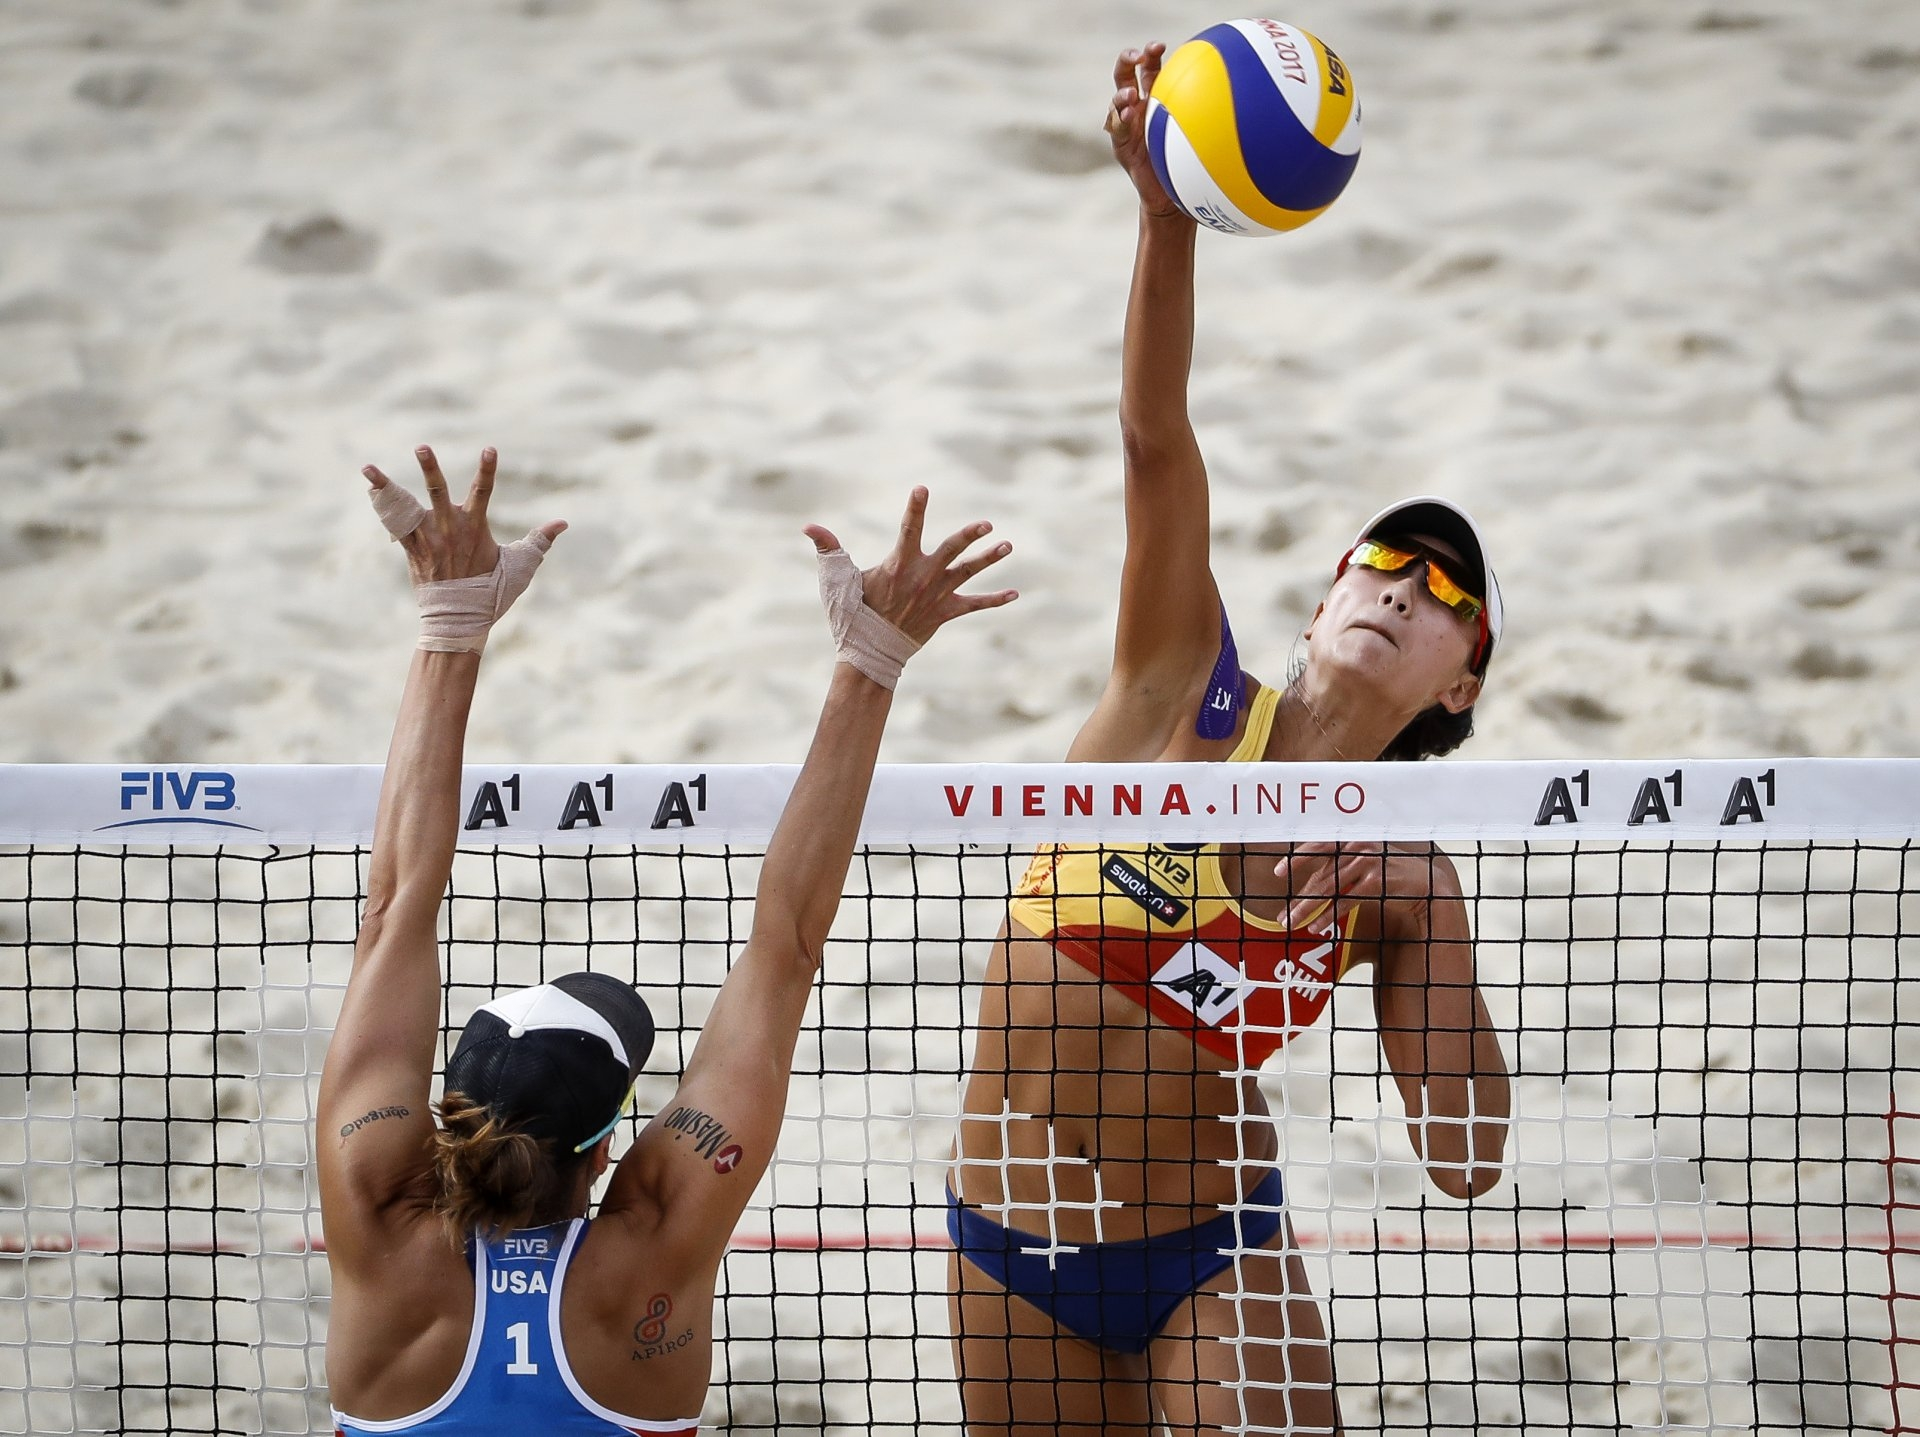 Chen Xue last competed internationally in the 2017 World Championships (Photocredit: FIVB)